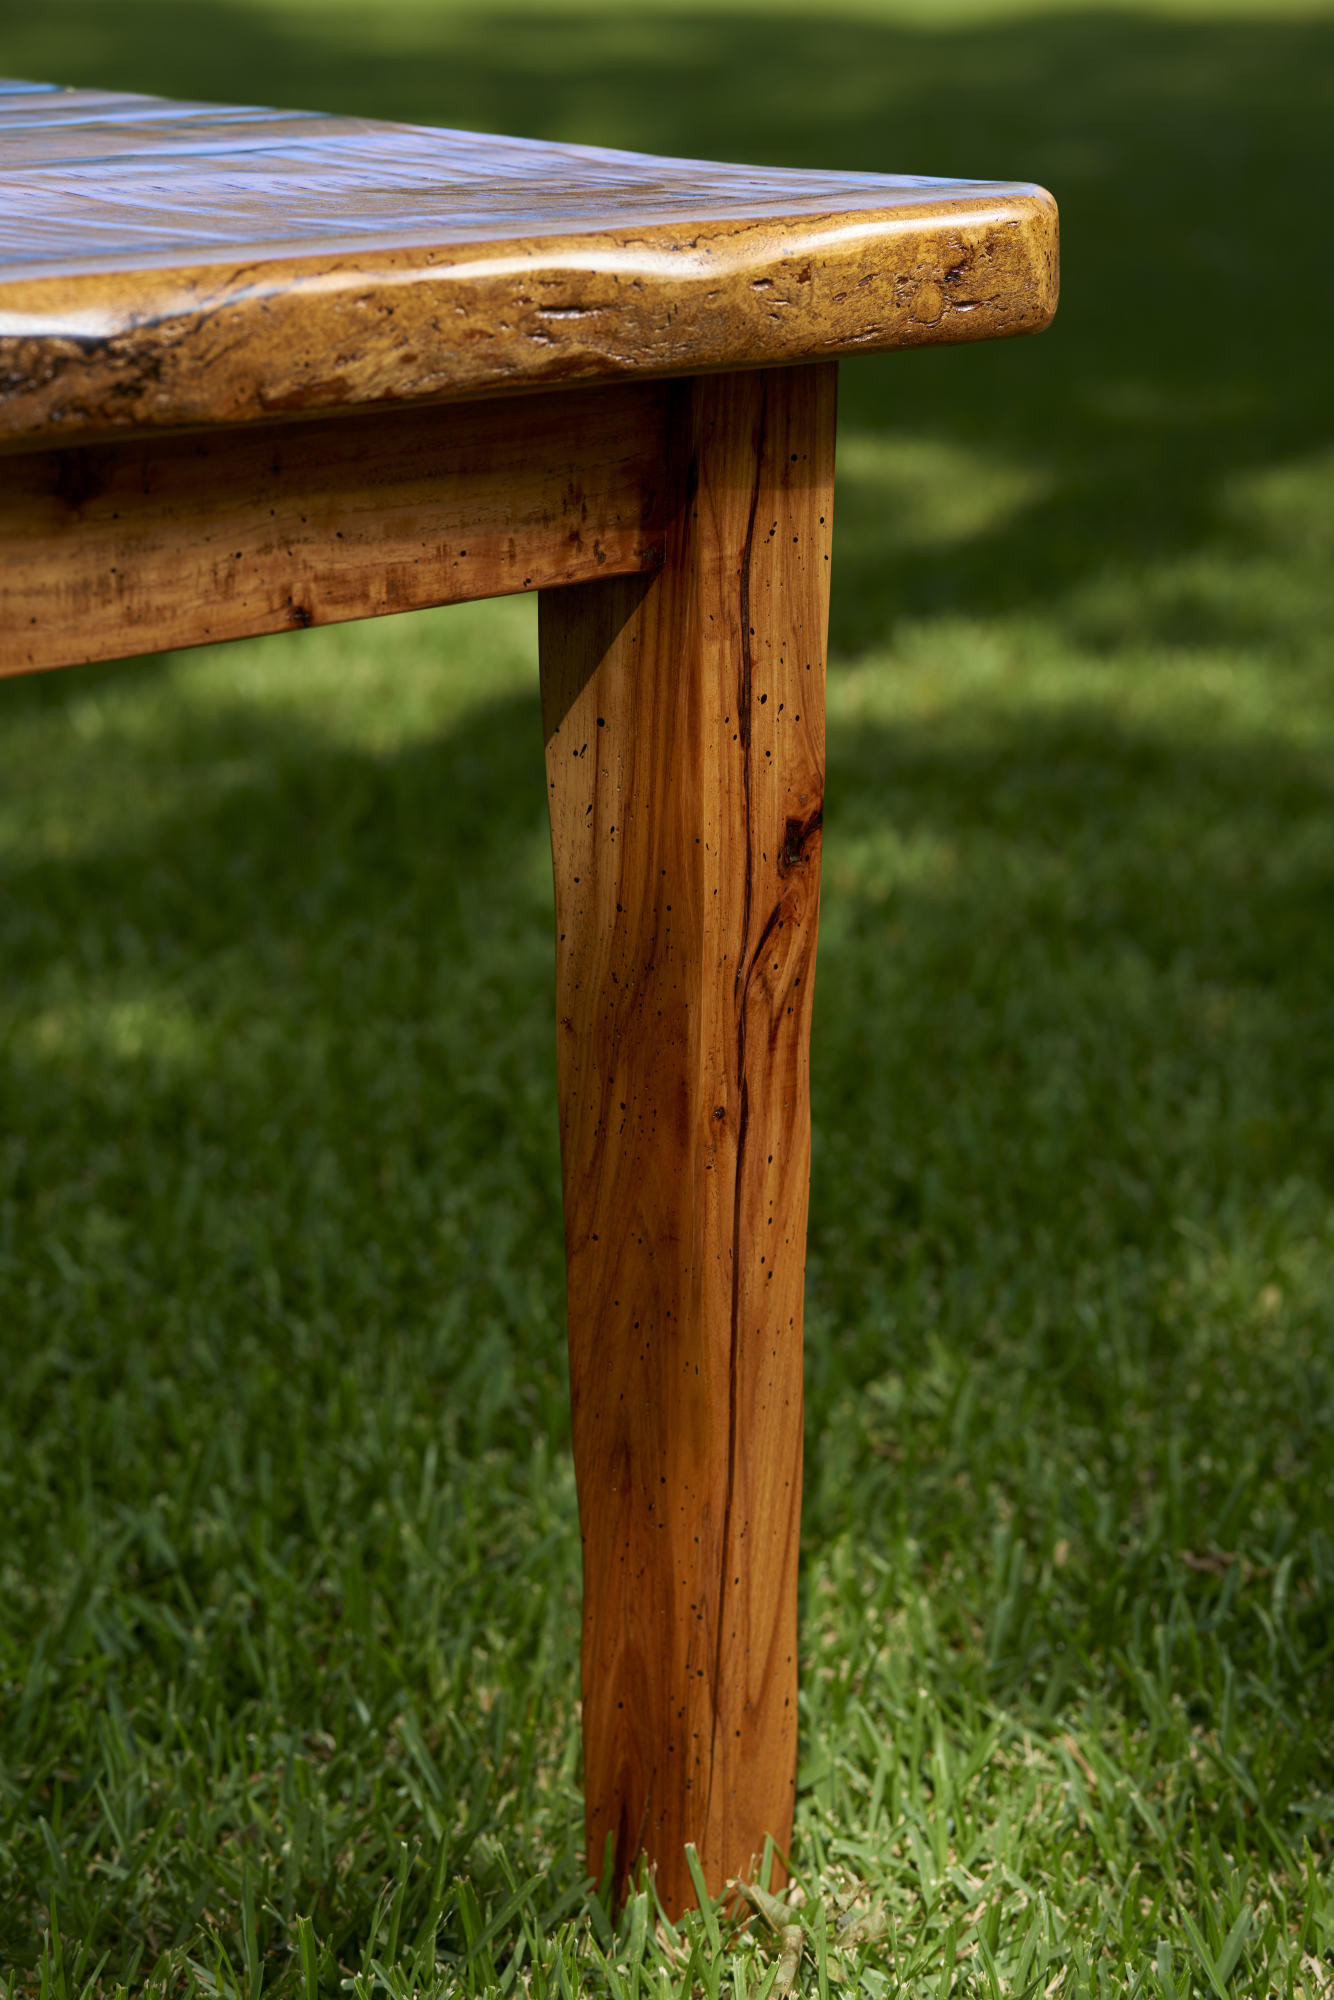 Rustic Furniture Photography of a rustic table leg.